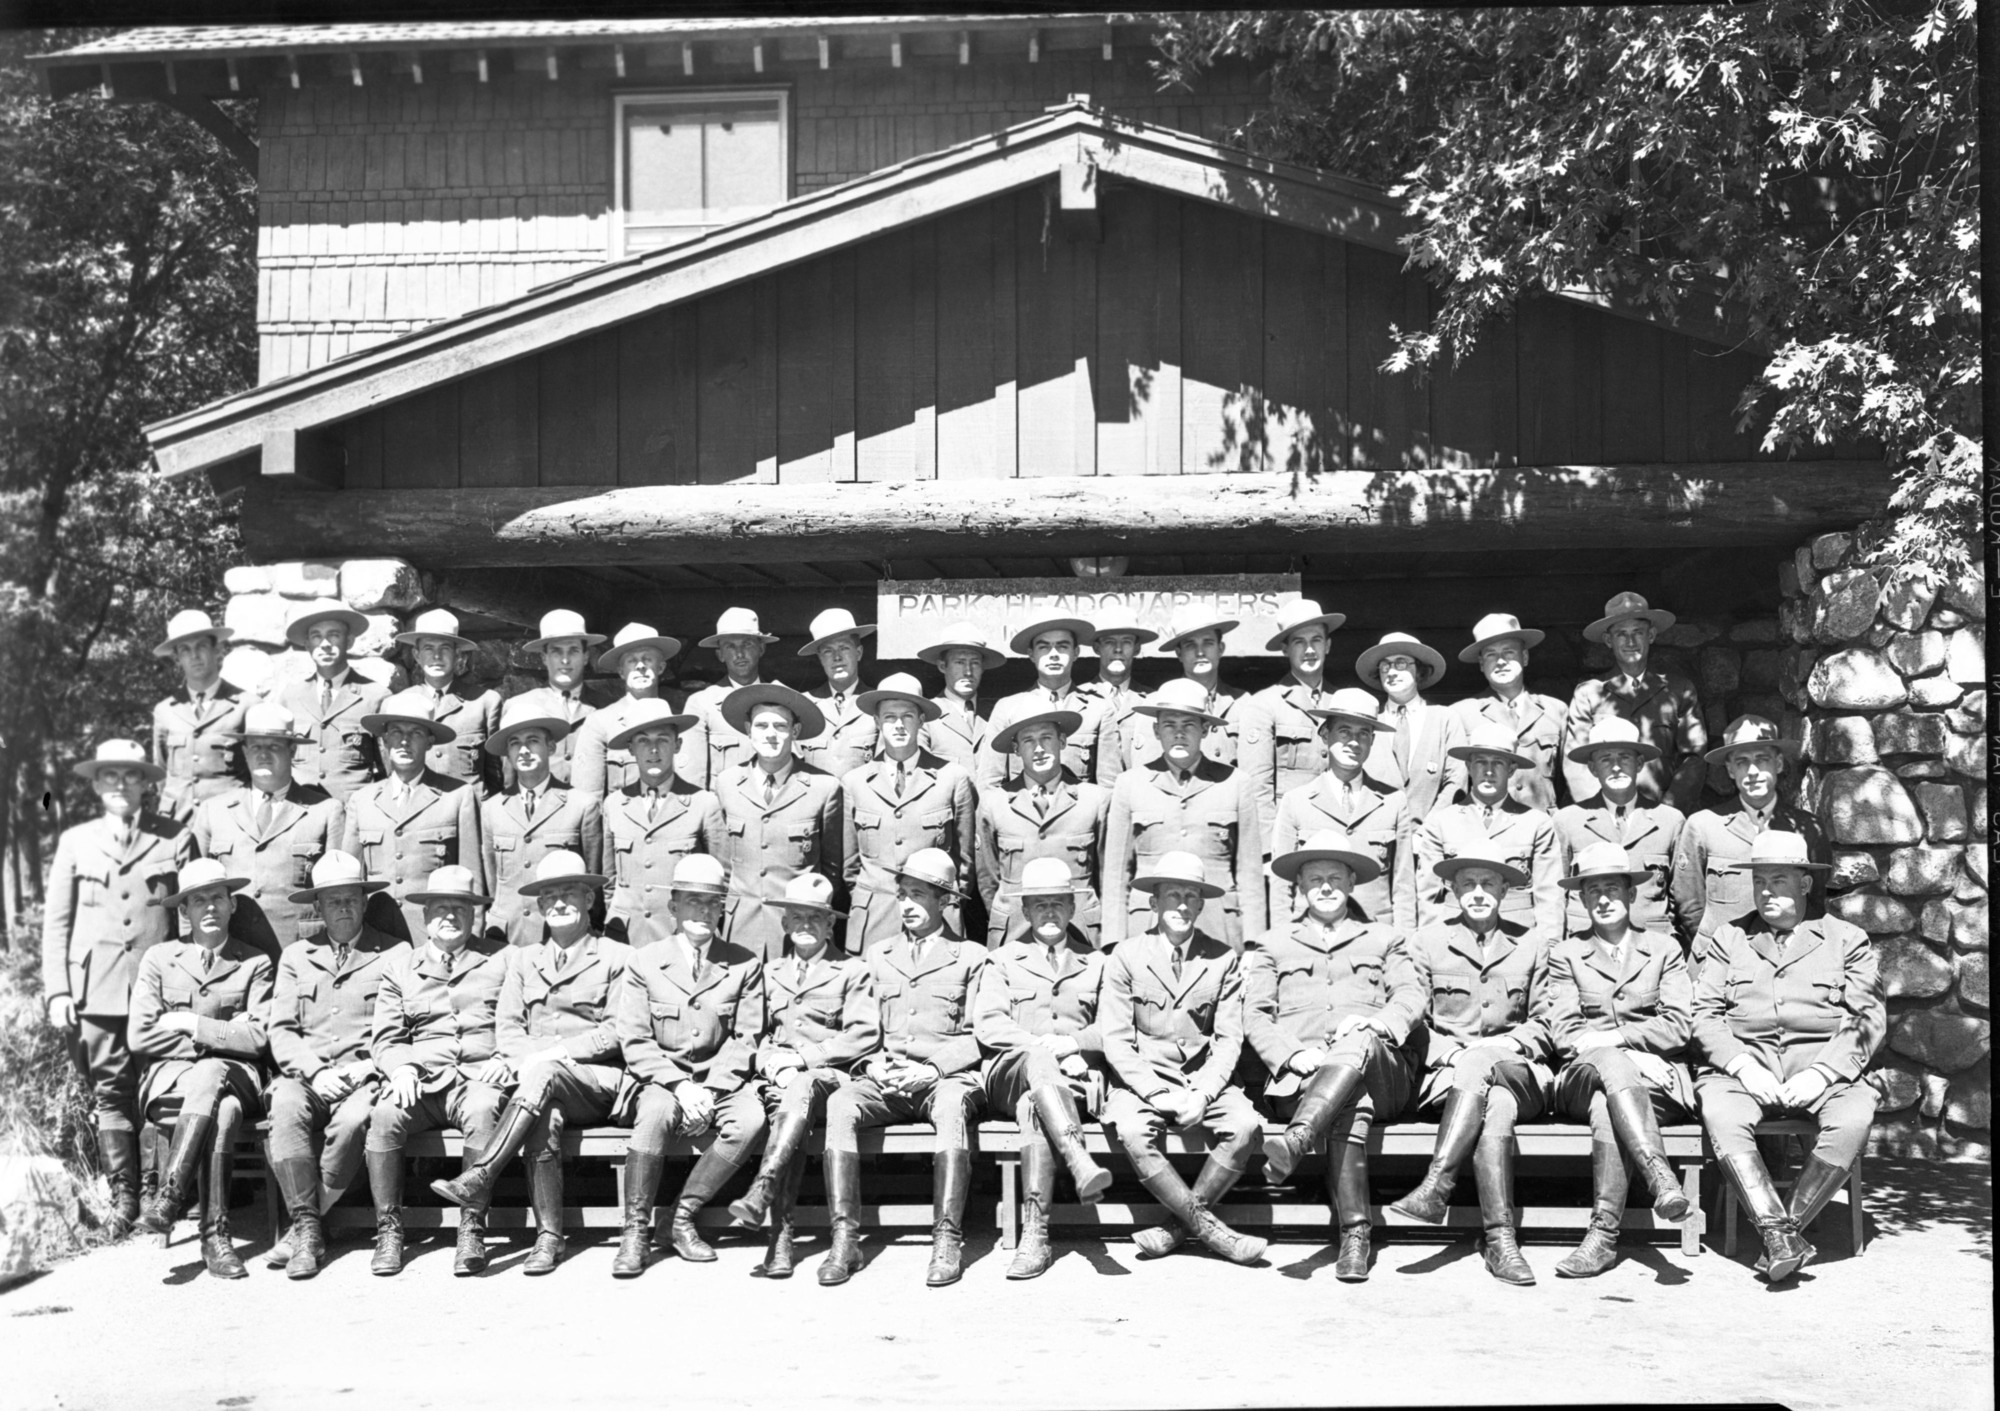 July 4th Conference of Ranger Force, in front of Admin. Building. Top Row: Frank Anderson, J. Minter, Odin Johnson, Don Bryan, Grover Caster, Vernon Lowery, Mitch Akins, Otto Brown, Holmes Miller, Ted Barnett, Gene Burns, Jack Scholl, Mrs. Hazel Whedon, Lloyd Finch, Dewey Winder. Middle Row: H. Rodeck (photogr:), Whedon, Archie Westfall, Damon Eckley, Harry During, Gerald E. Mernin, Ferd. Fletcher, L. Wieland, Russ Huse, Elwin Heller, W. K. Merrill, L. Farwell, Homer B. Hoyt. Lower Row: John Bingaman, Henry A. Skelton, Chas. F. Adair, Gus Eastman, Billy Nelson, Carl Danner, Frank A. Kittredge - NPS Chief Engineer, Supt. C. G. Thomson, Chief Ranger F. S. Townsley, Assist. Chief J. Wegner, Oscar Irwin, Ernie Reed.